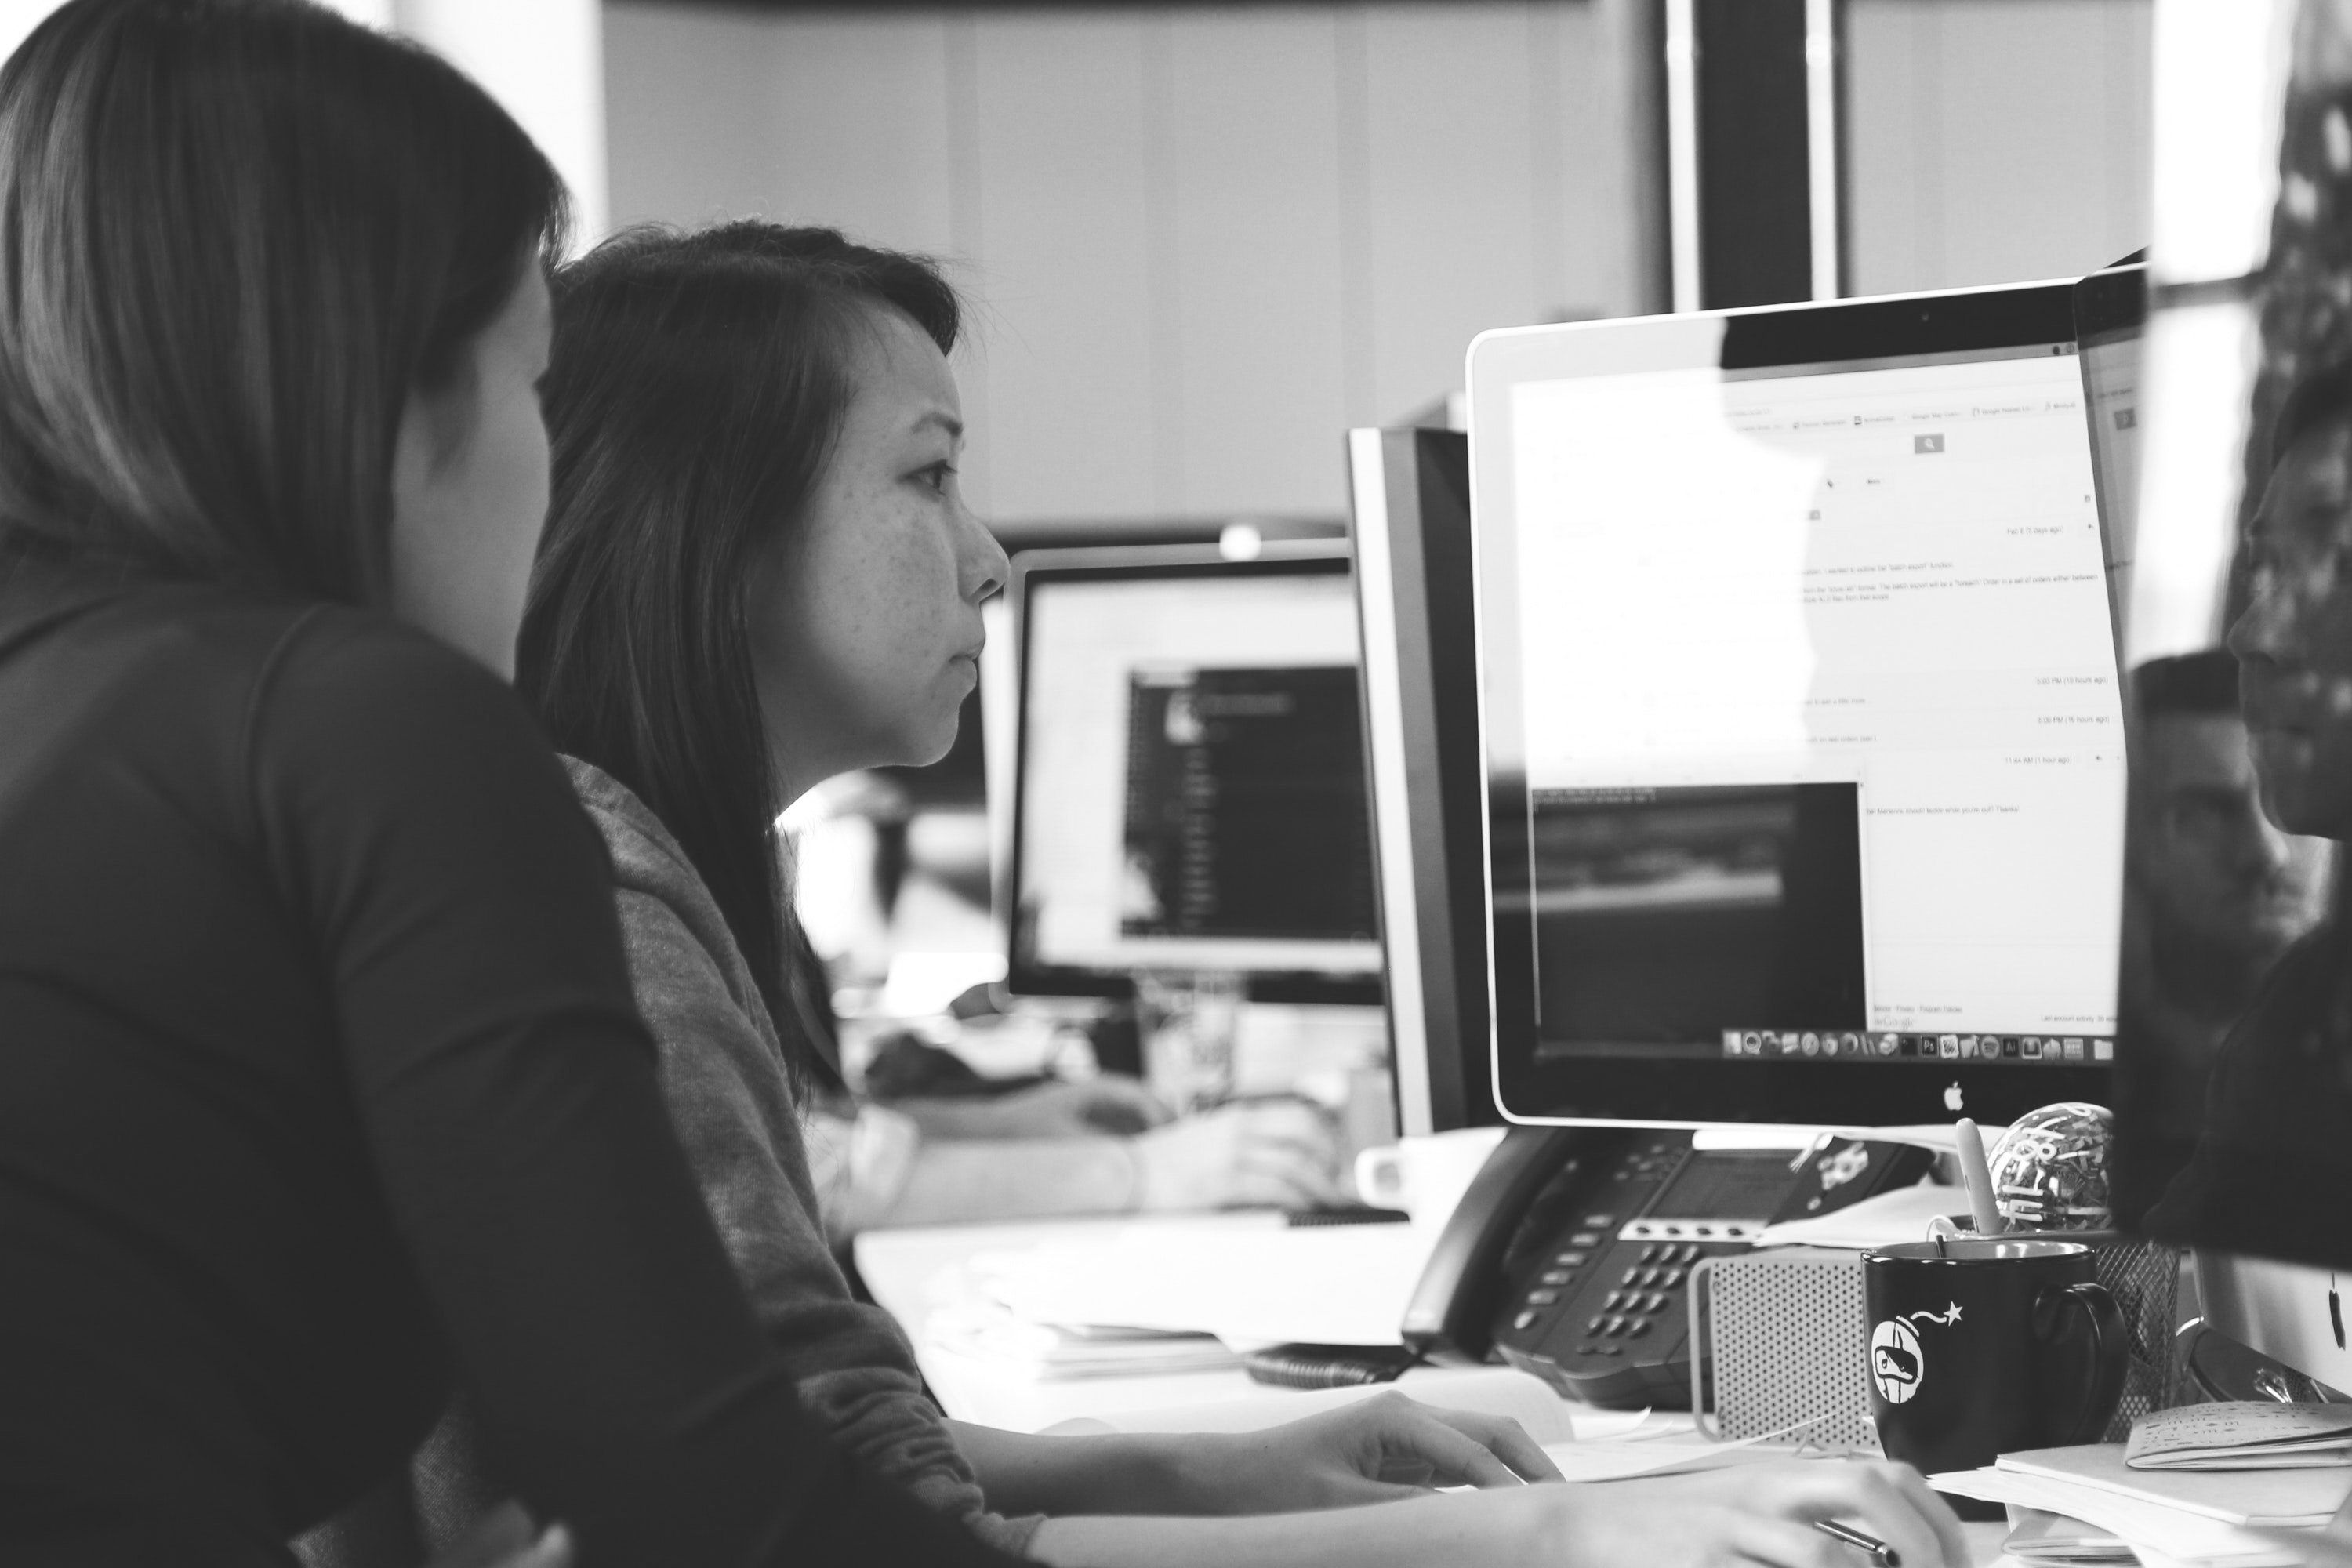 Black and white photo of two women sitting at a computer